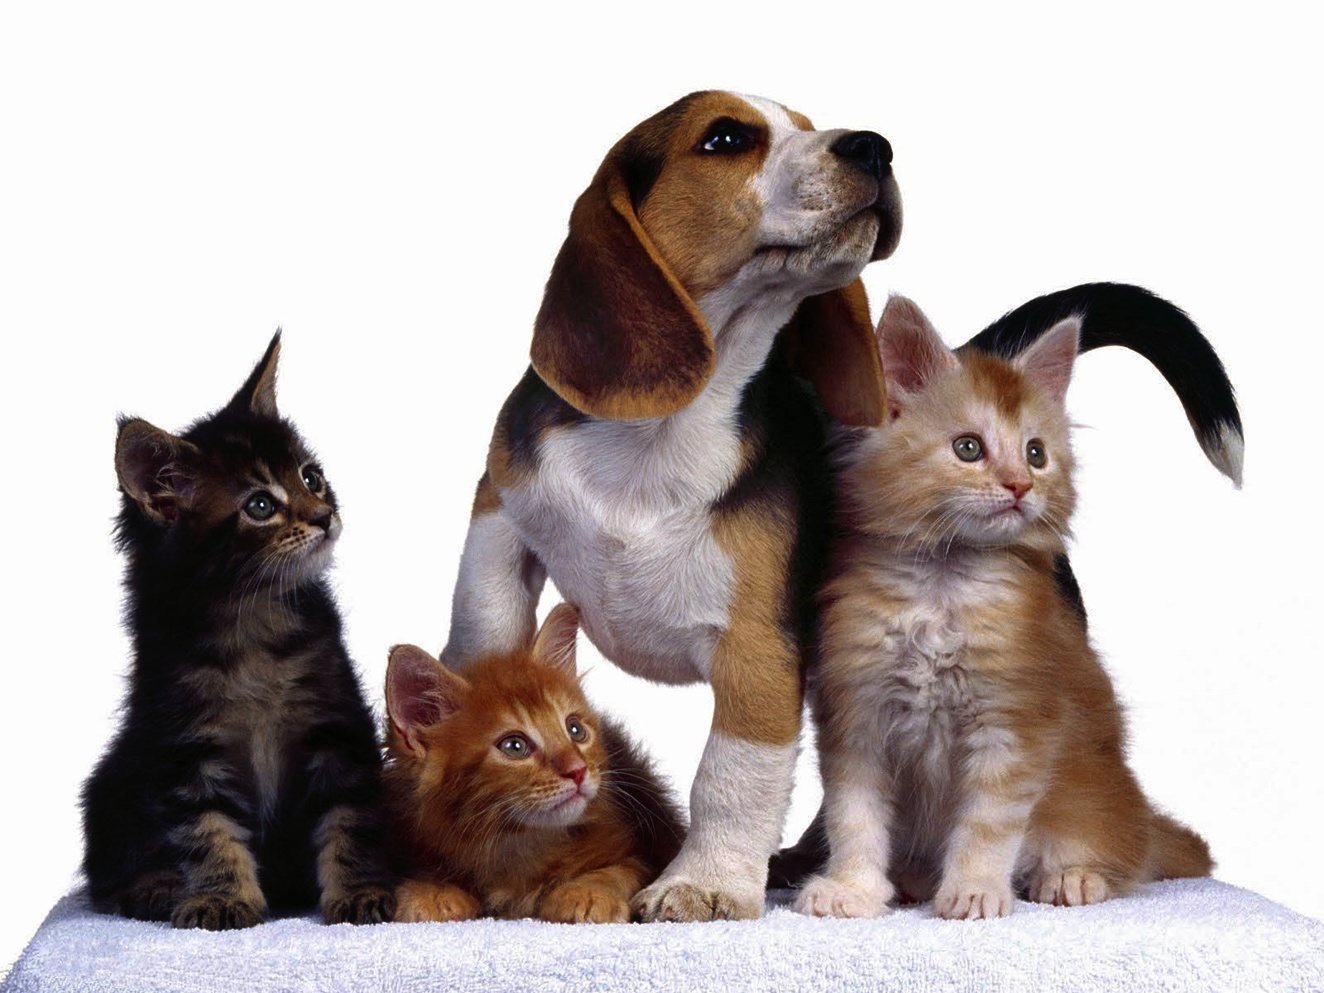 Cute Dog And Cat Wallpaper 1324x993